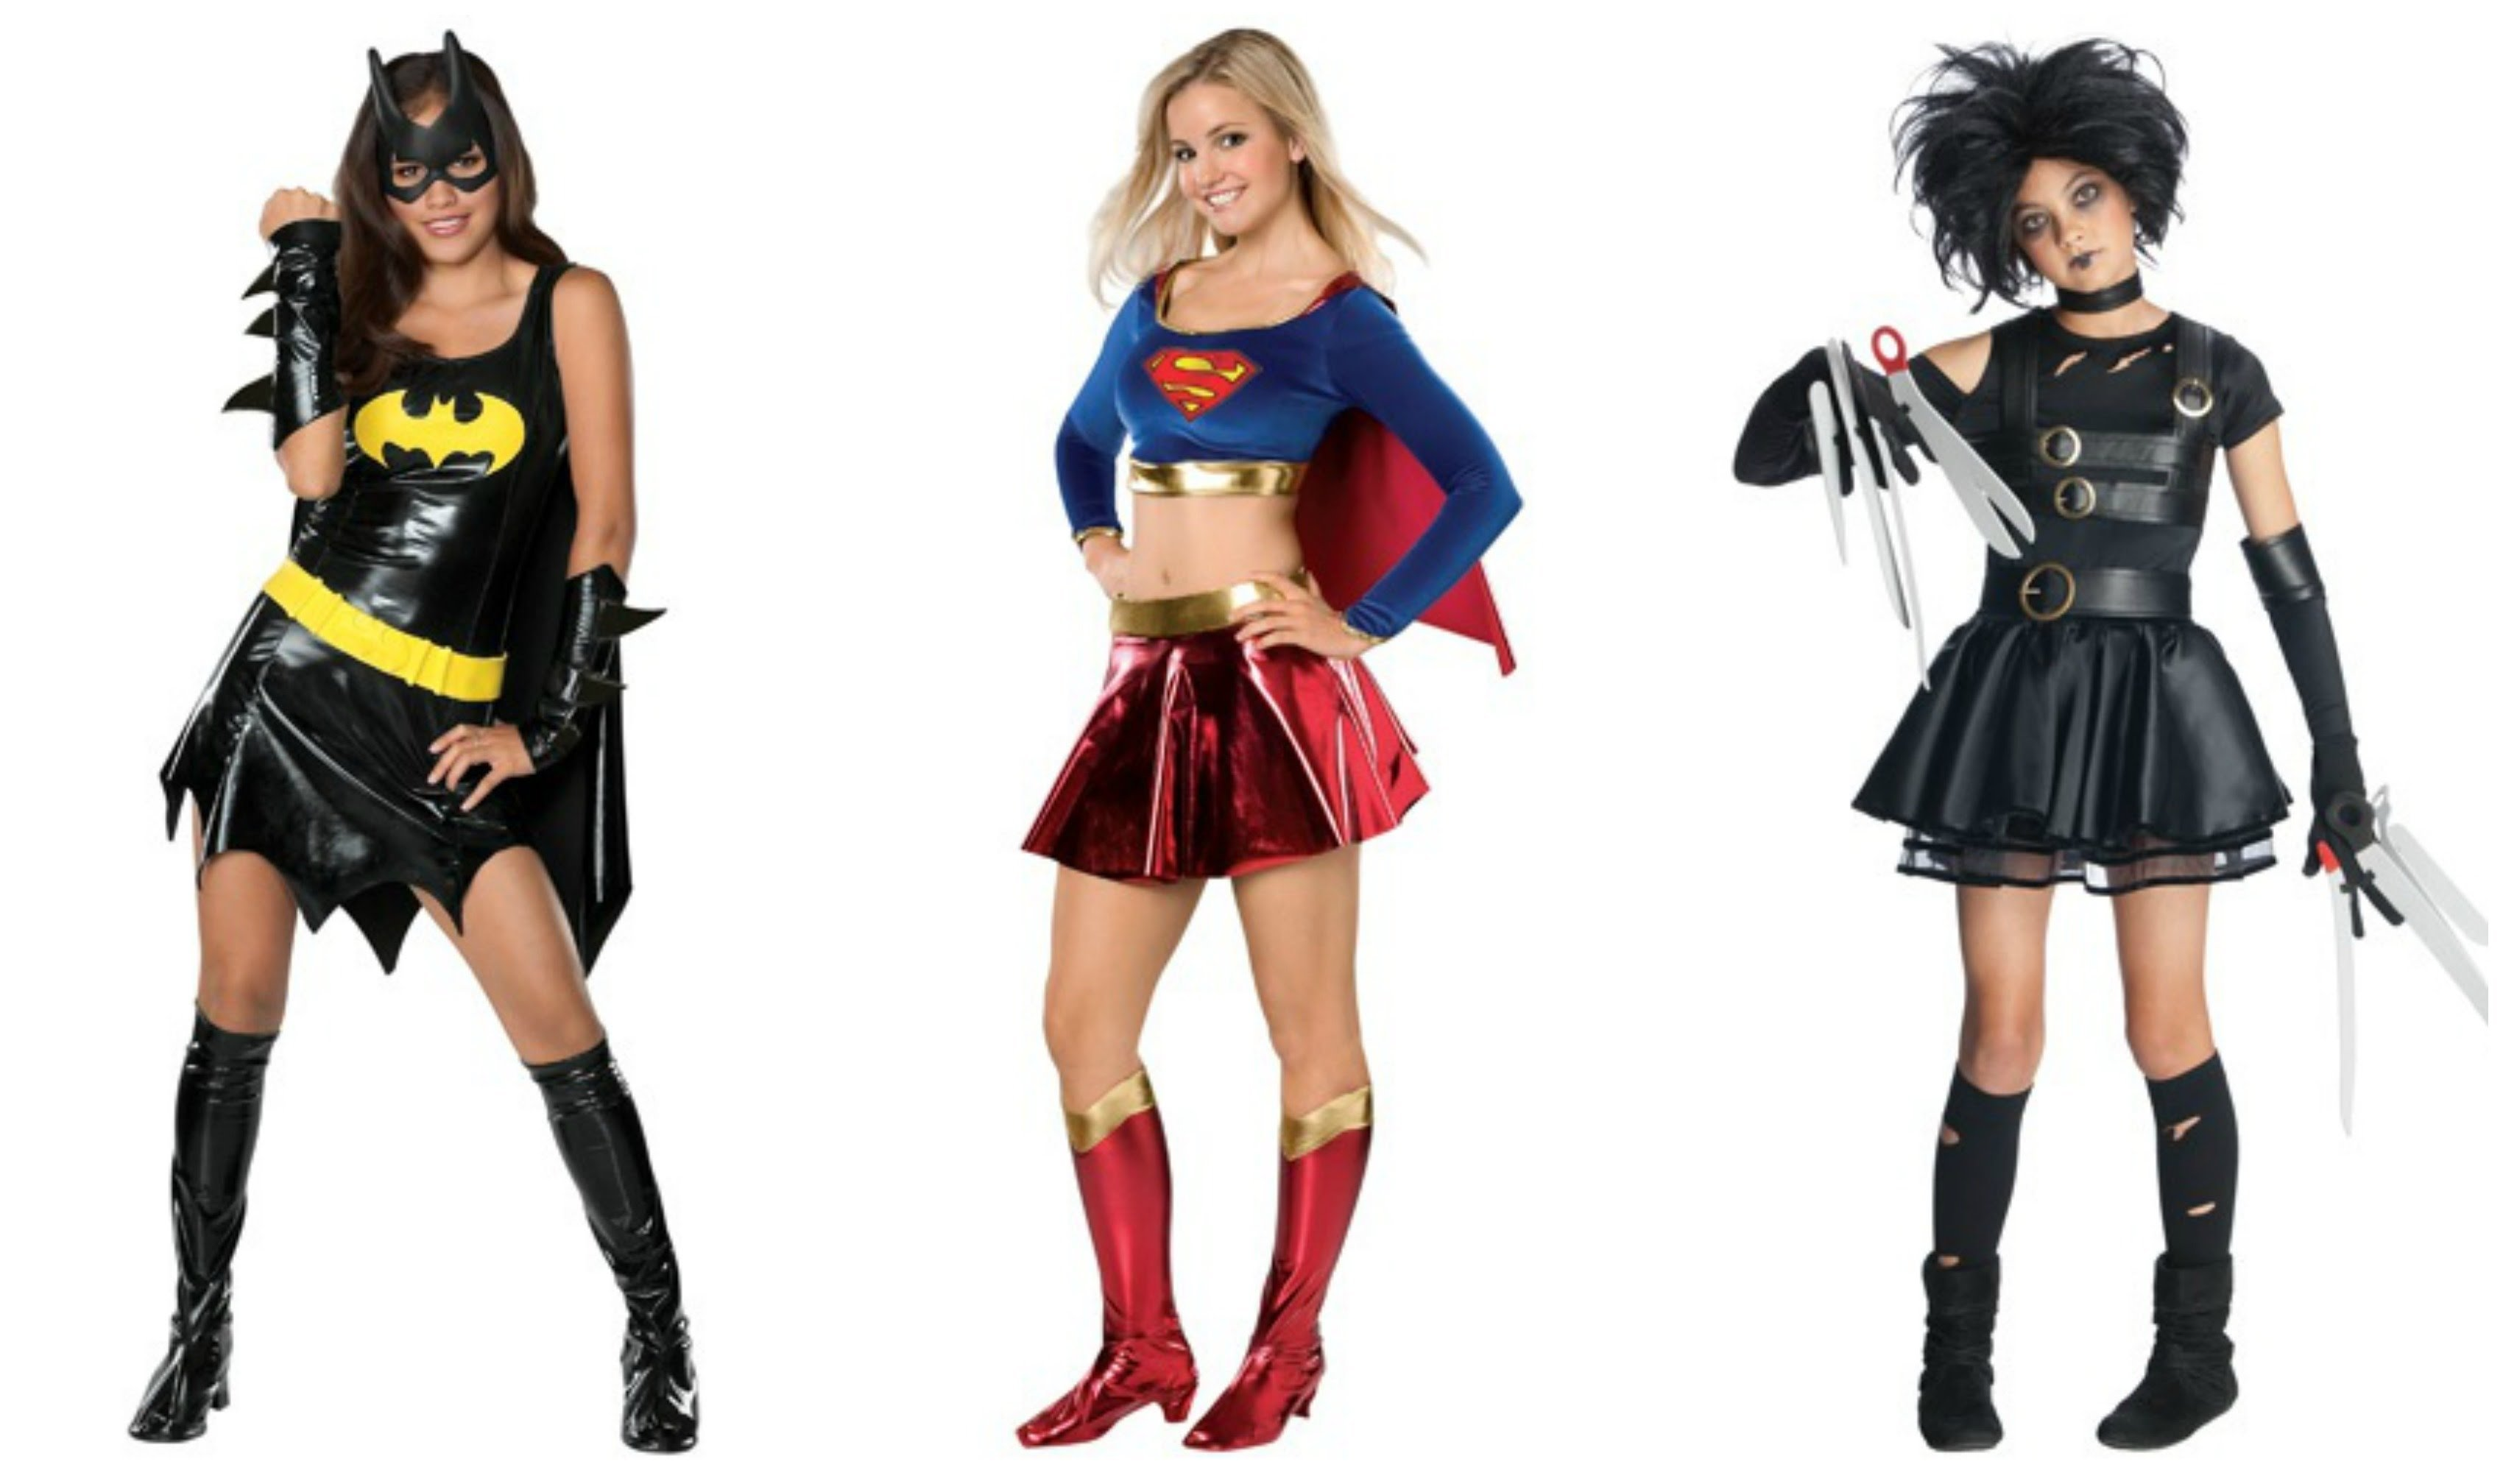 10 amazing halloween costume ideas teenage girls halloween costume ideas for teens girls youtube best teenage